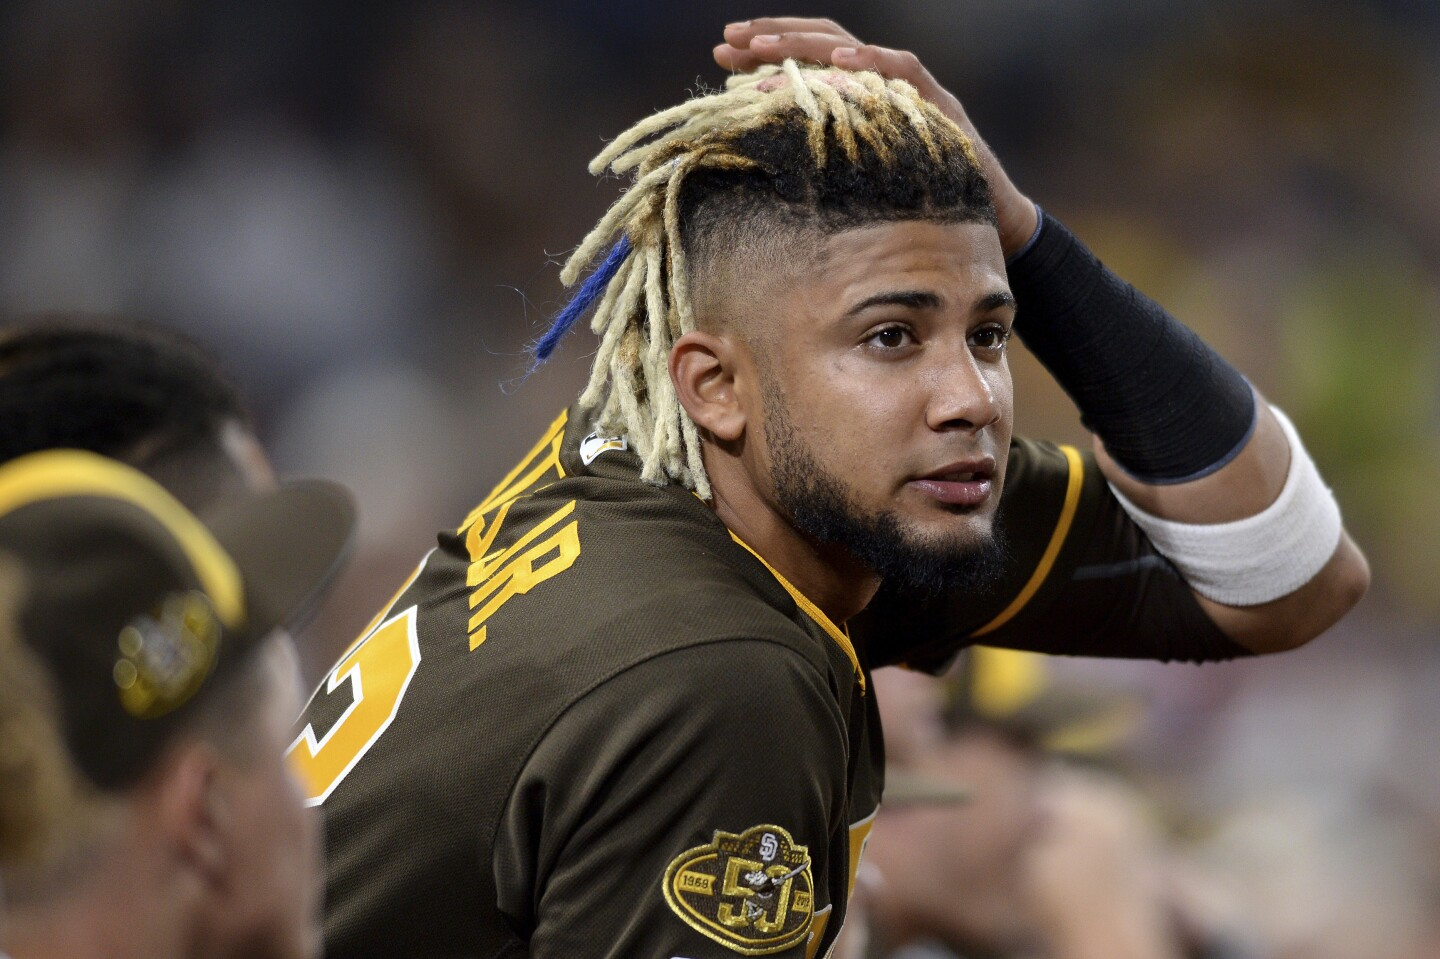 San Diego Padres' Fernando Tatis Jr. looks on from the dugout during the sixth inning of the baseball game against the Colorado Rockies Friday, Aug. 9, 2019, in San Diego. (AP Photo/Orlando Ramirez)